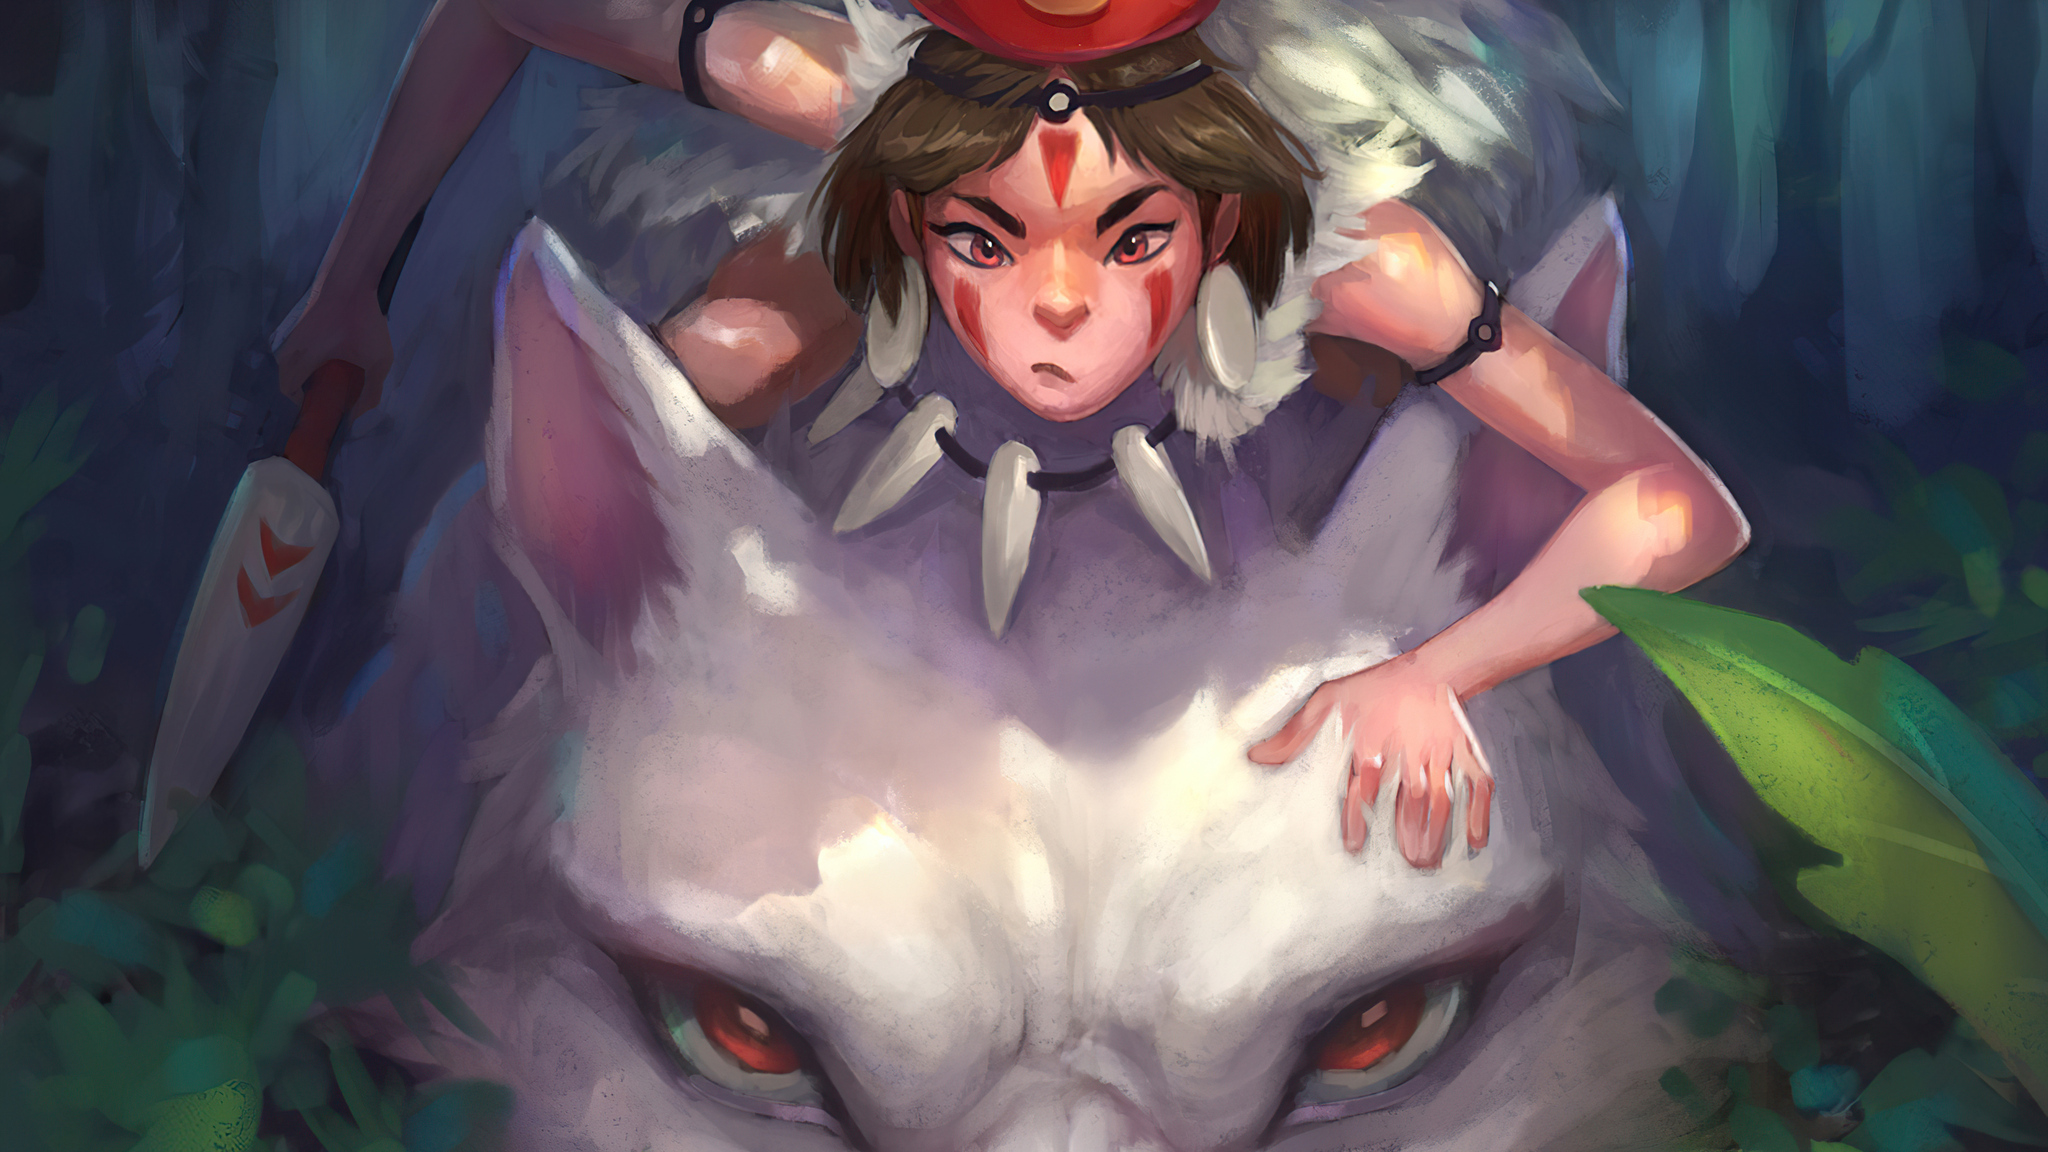 2048x1152 Princess Mononoke Fanart 4k 2048x1152 Resolution Hd 4k Wallpapers Images Backgrounds Photos And Pictures